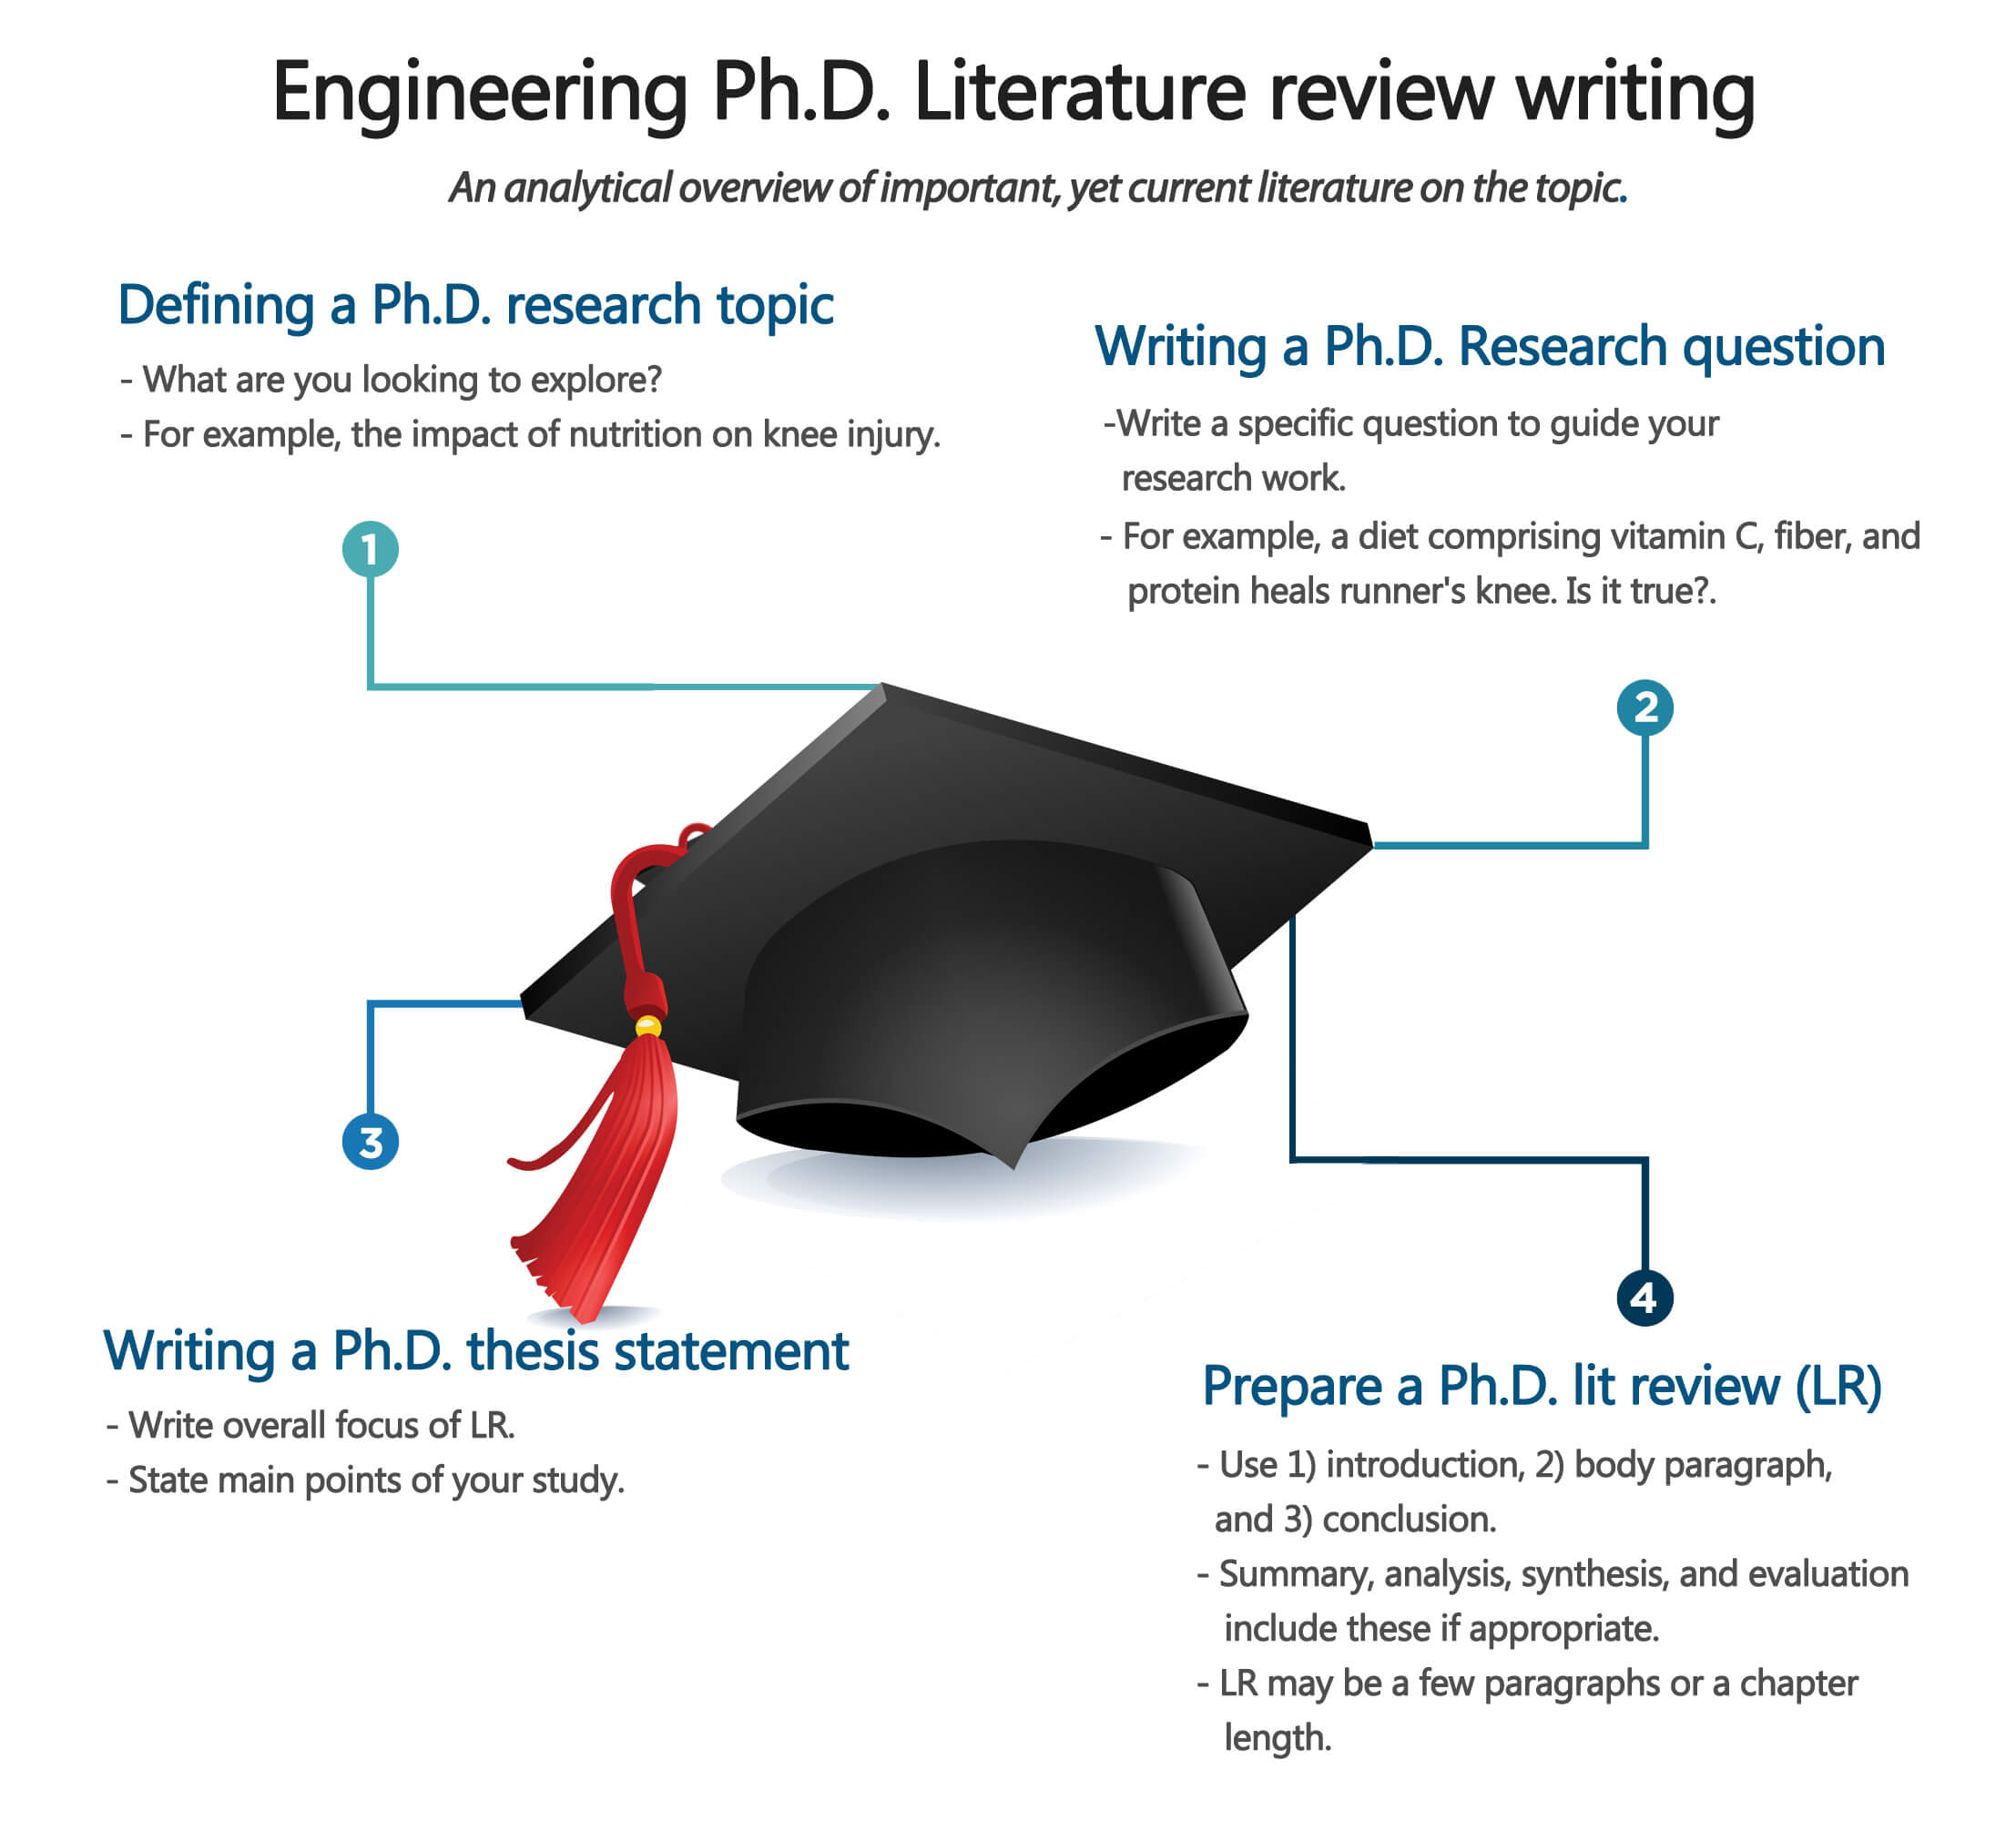 Writing a Literature Review and in Need of Help? Consider These Tips From our Experts at PhD Assistance.